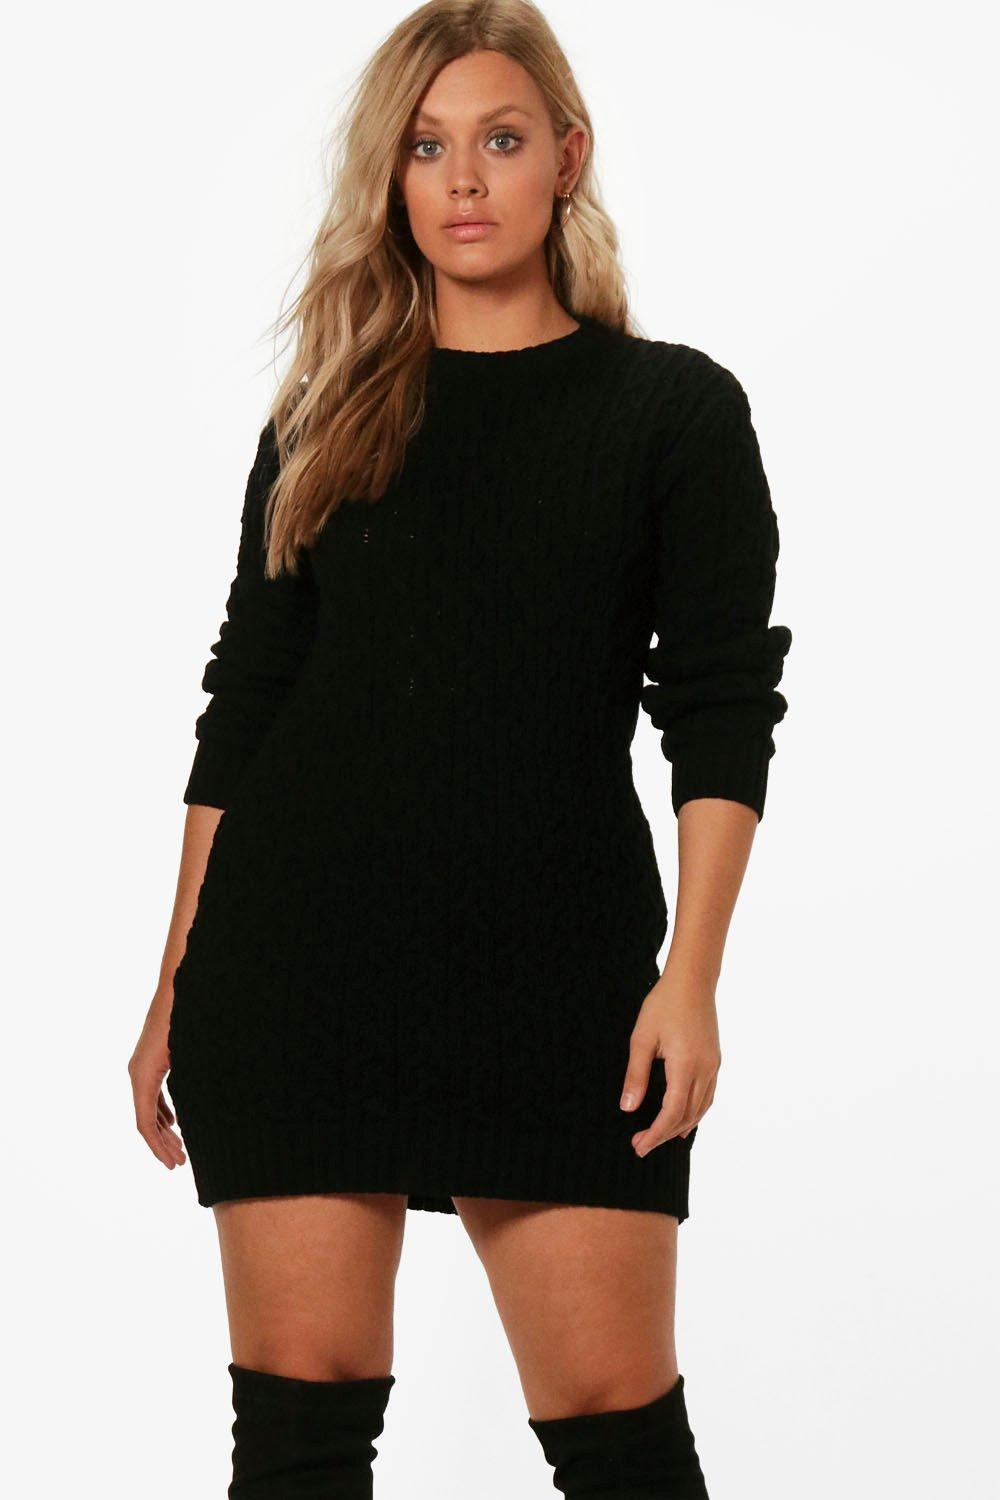 1f057fbedb6 Womens Black Plus Cable Knitted Jumper Dress. Hover to zoom